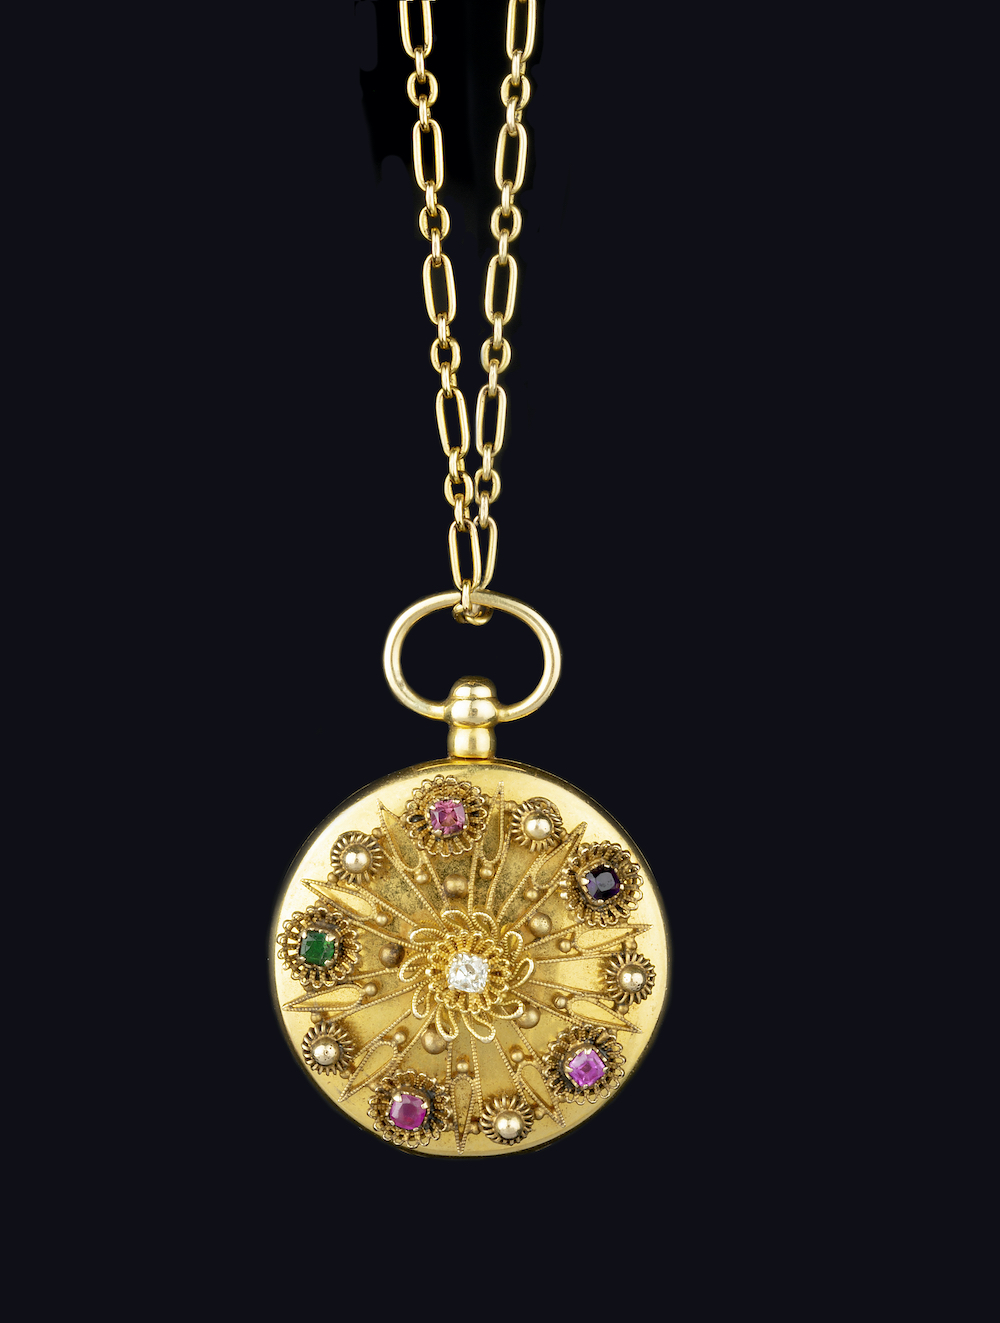 Diamond and Gem 'REGARD' Locket Pendant